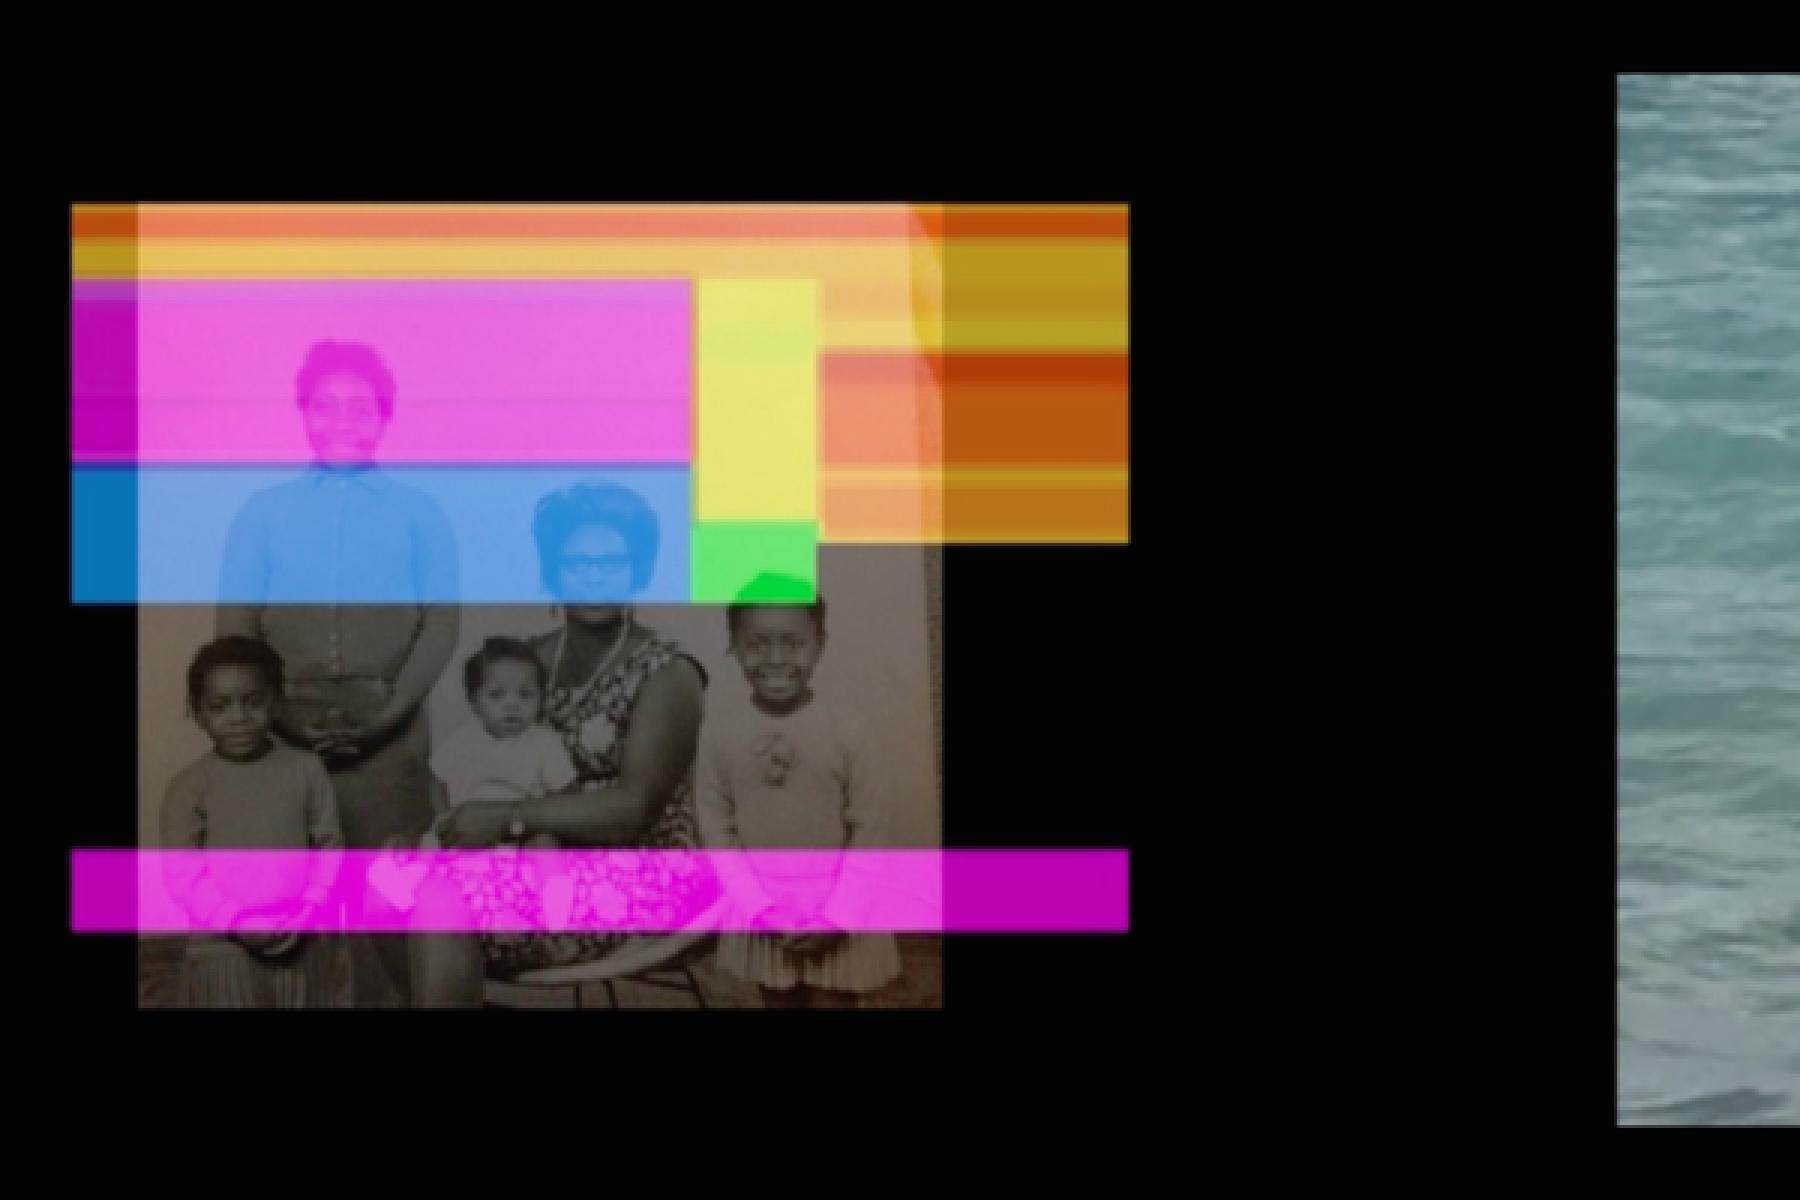 Film still from Zinzi Minott Fi Dem II - an image of a Black family sits top left which has been distorted with striped colours running across their faces. To the right of the image, you can see the beginnings of another image of seawater.